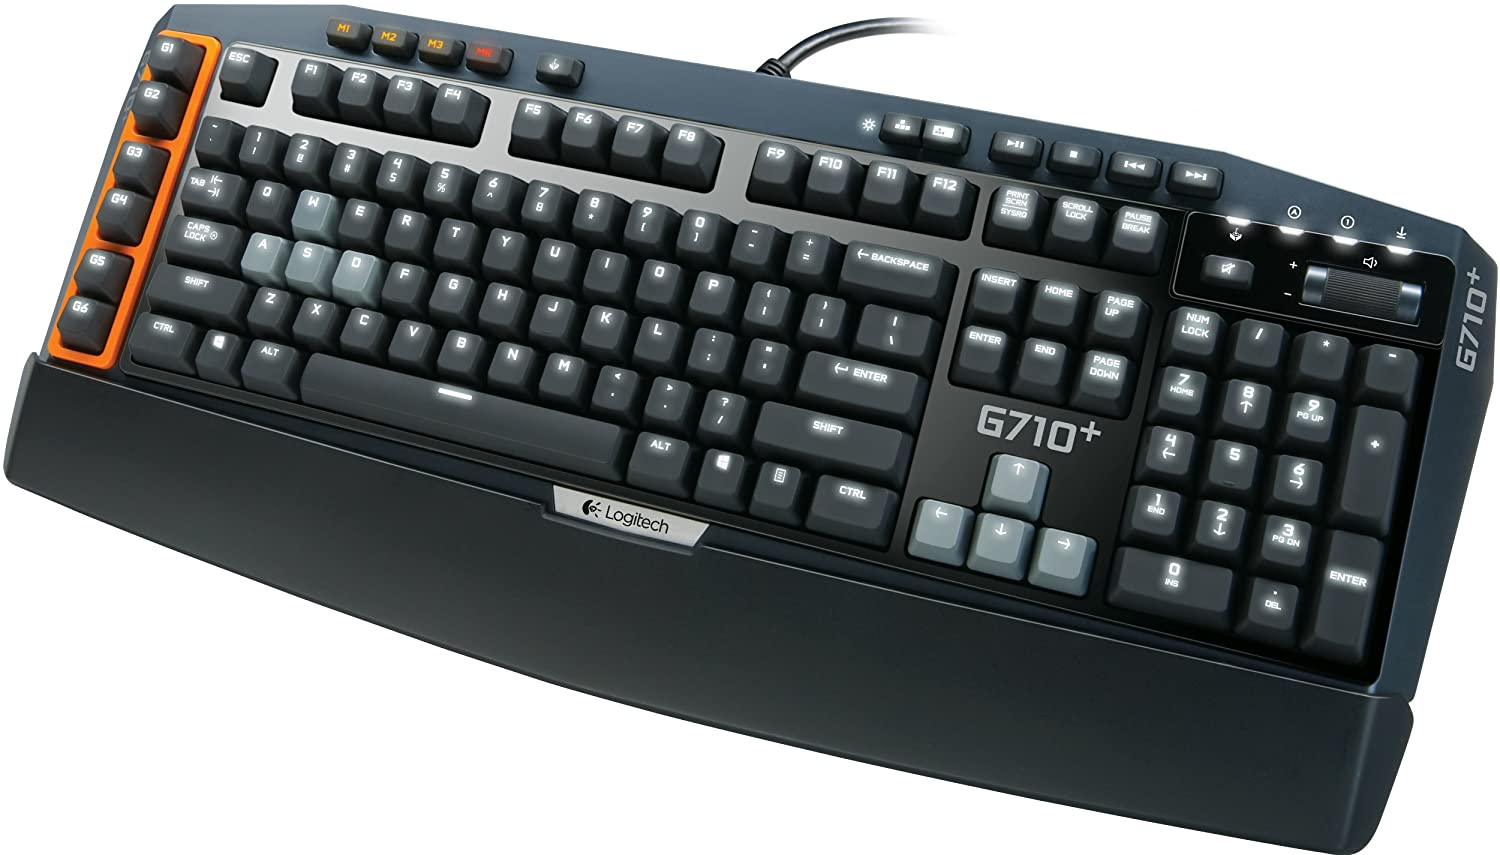 10 Best Mechanical Keyboard Under $100 - 2021 Buying Guide 3